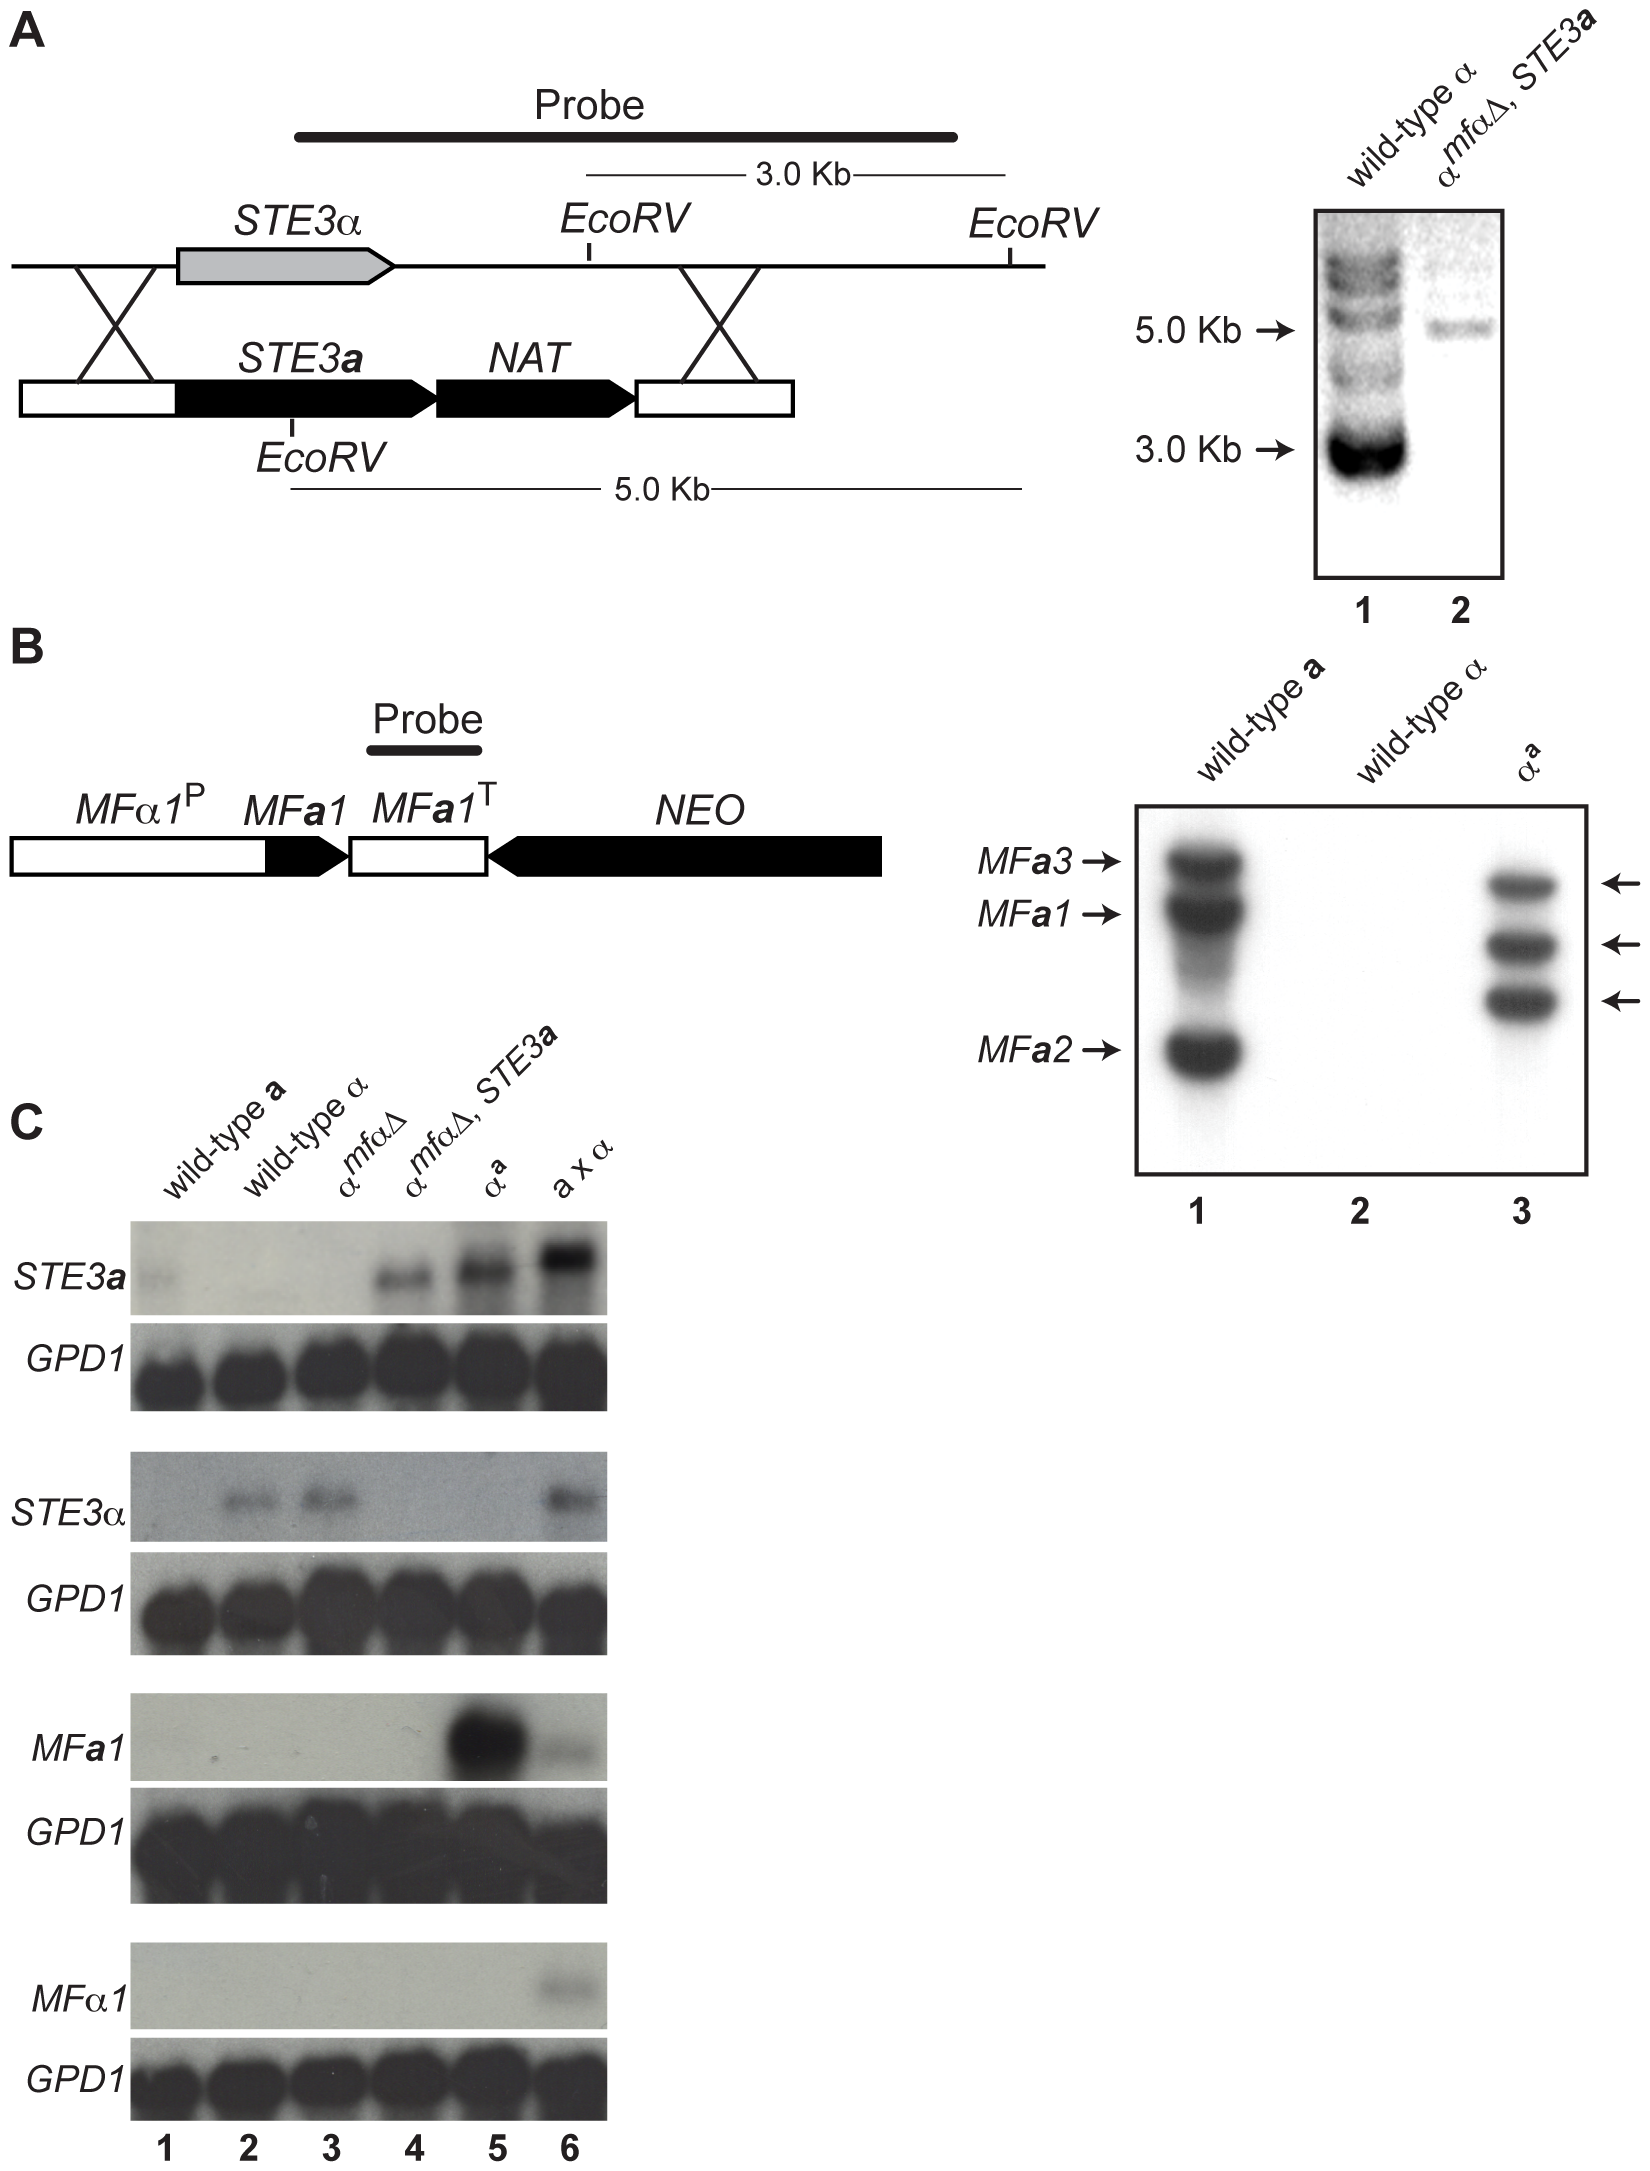 Southern and northern analyses of wild-type and modified α strains.